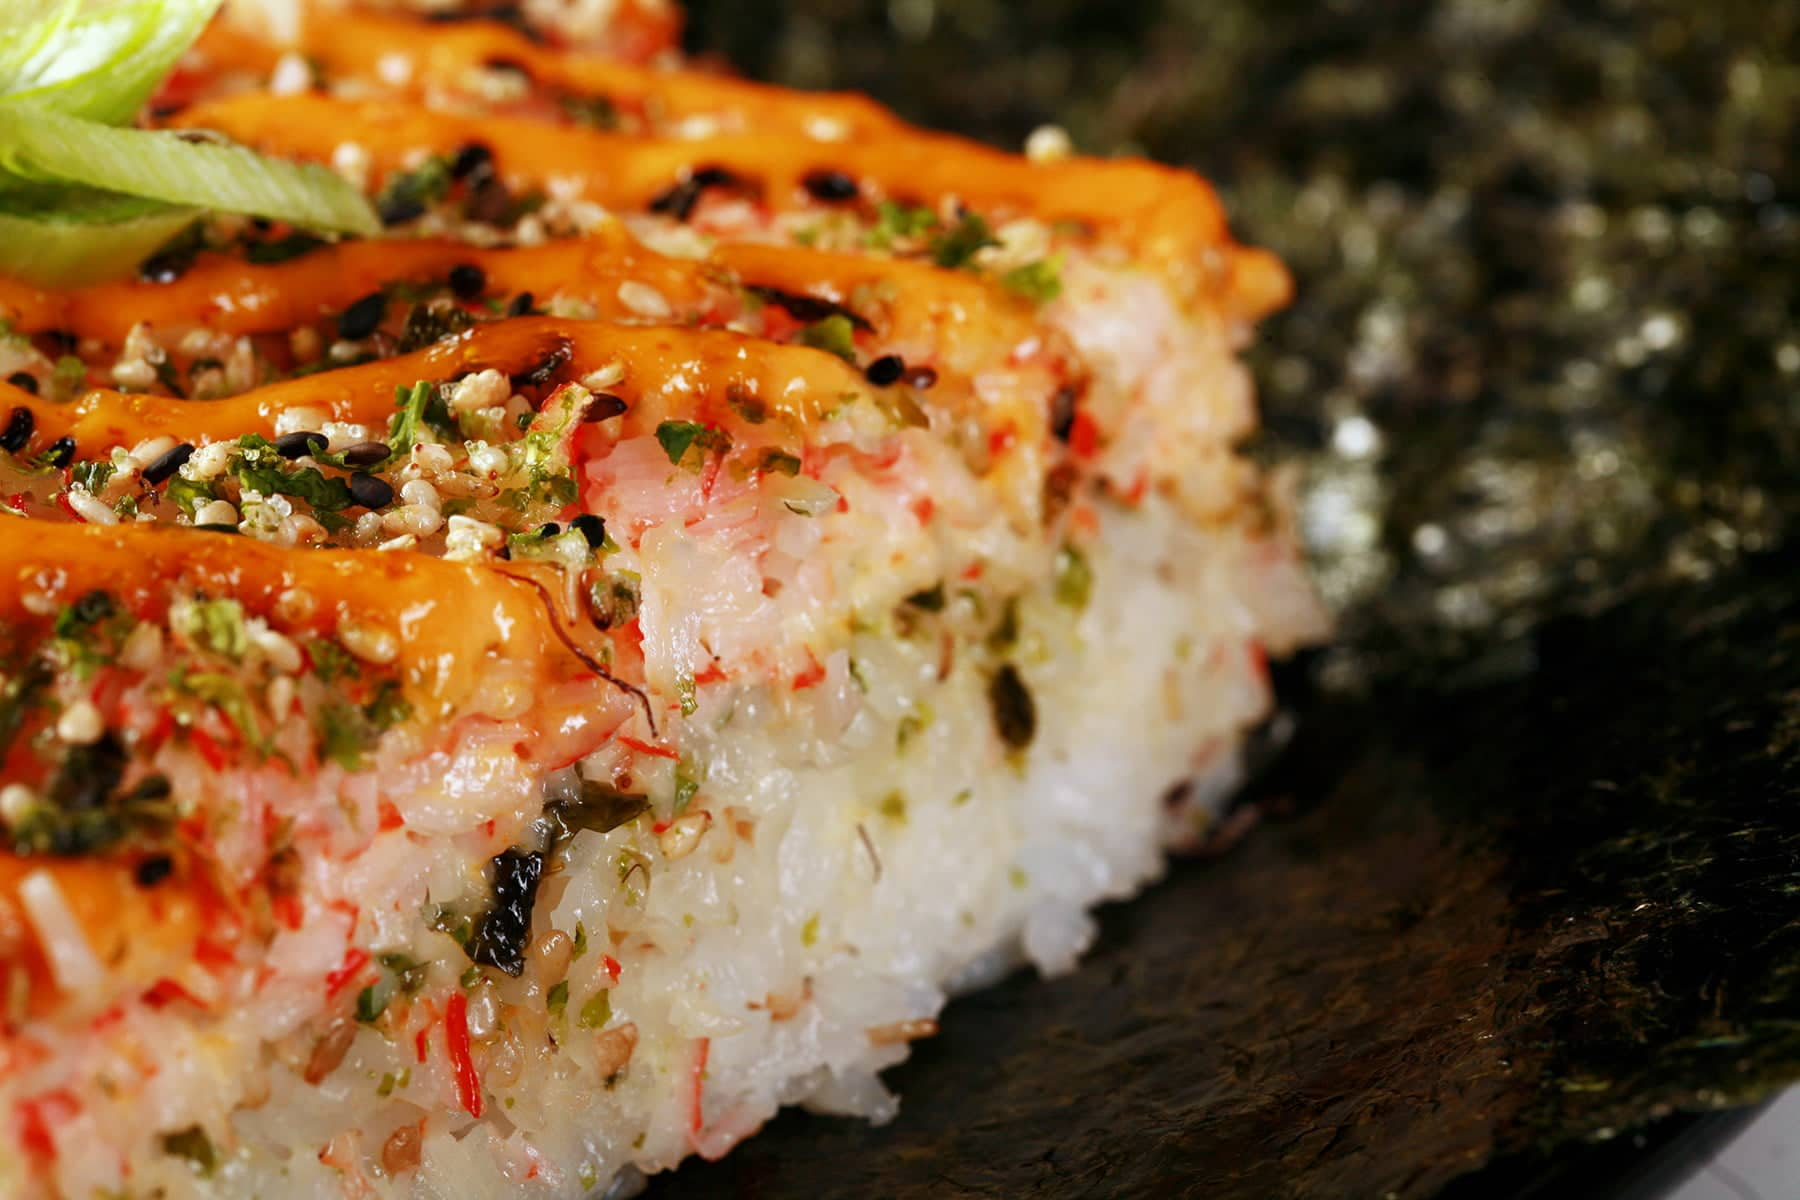 A close up view of a square serving of sushi bake - A casserole made from sushi rice, furikake, and a spicy imitation crab topping.